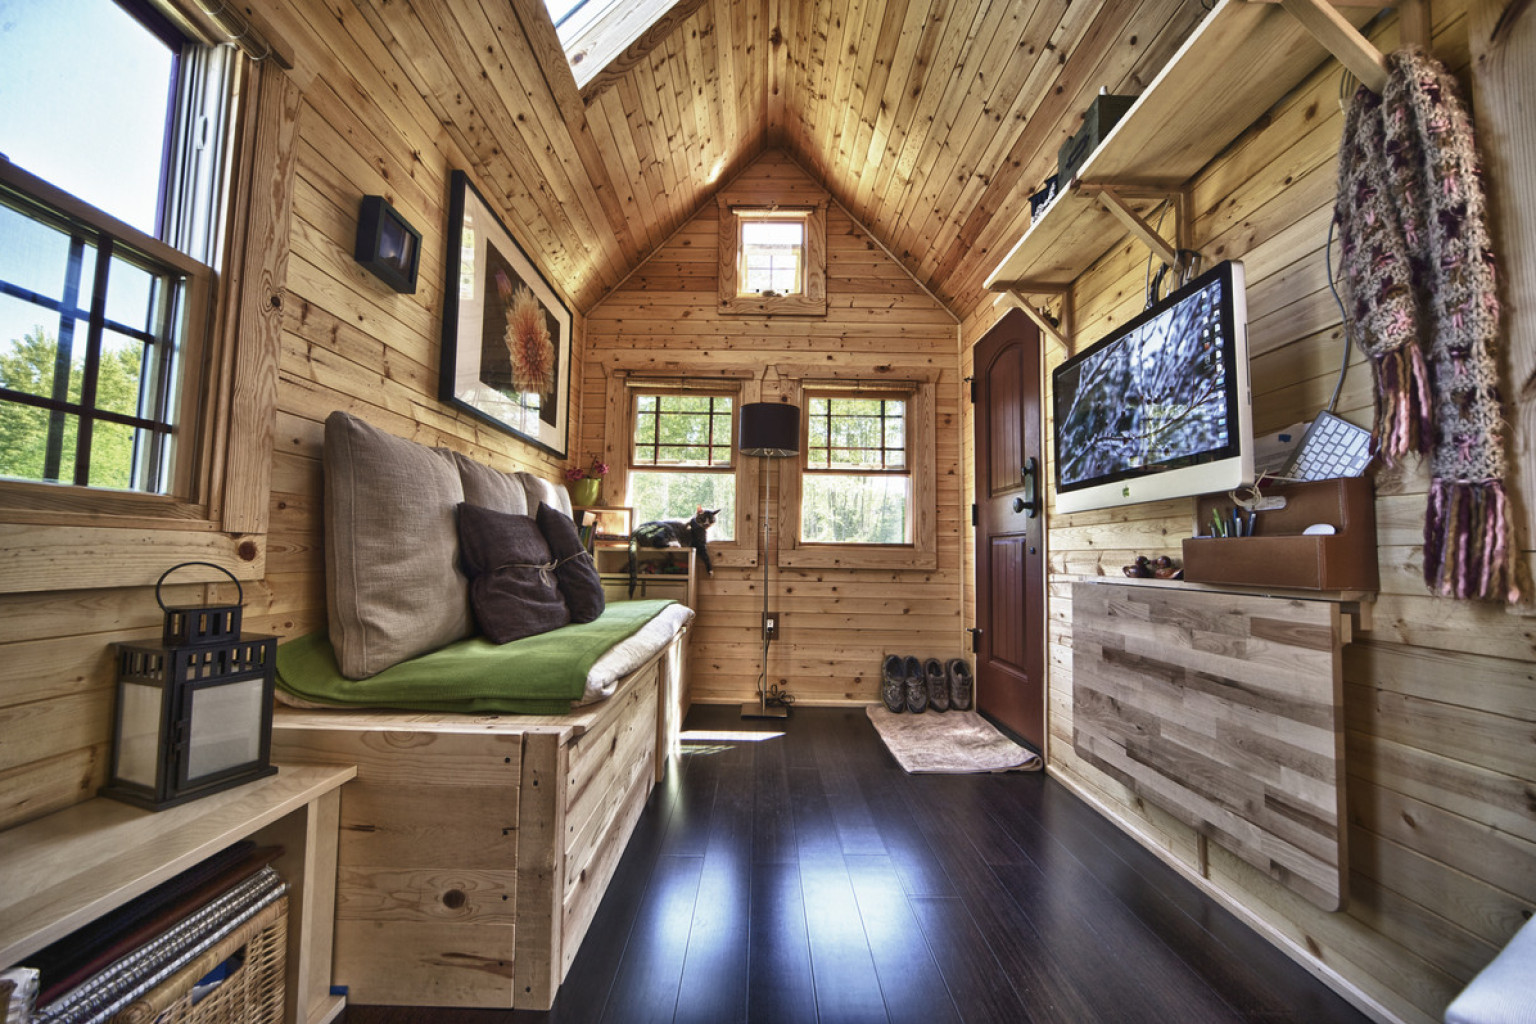 Tiny Home Infographic Shows 68 Percent Of Small-Space